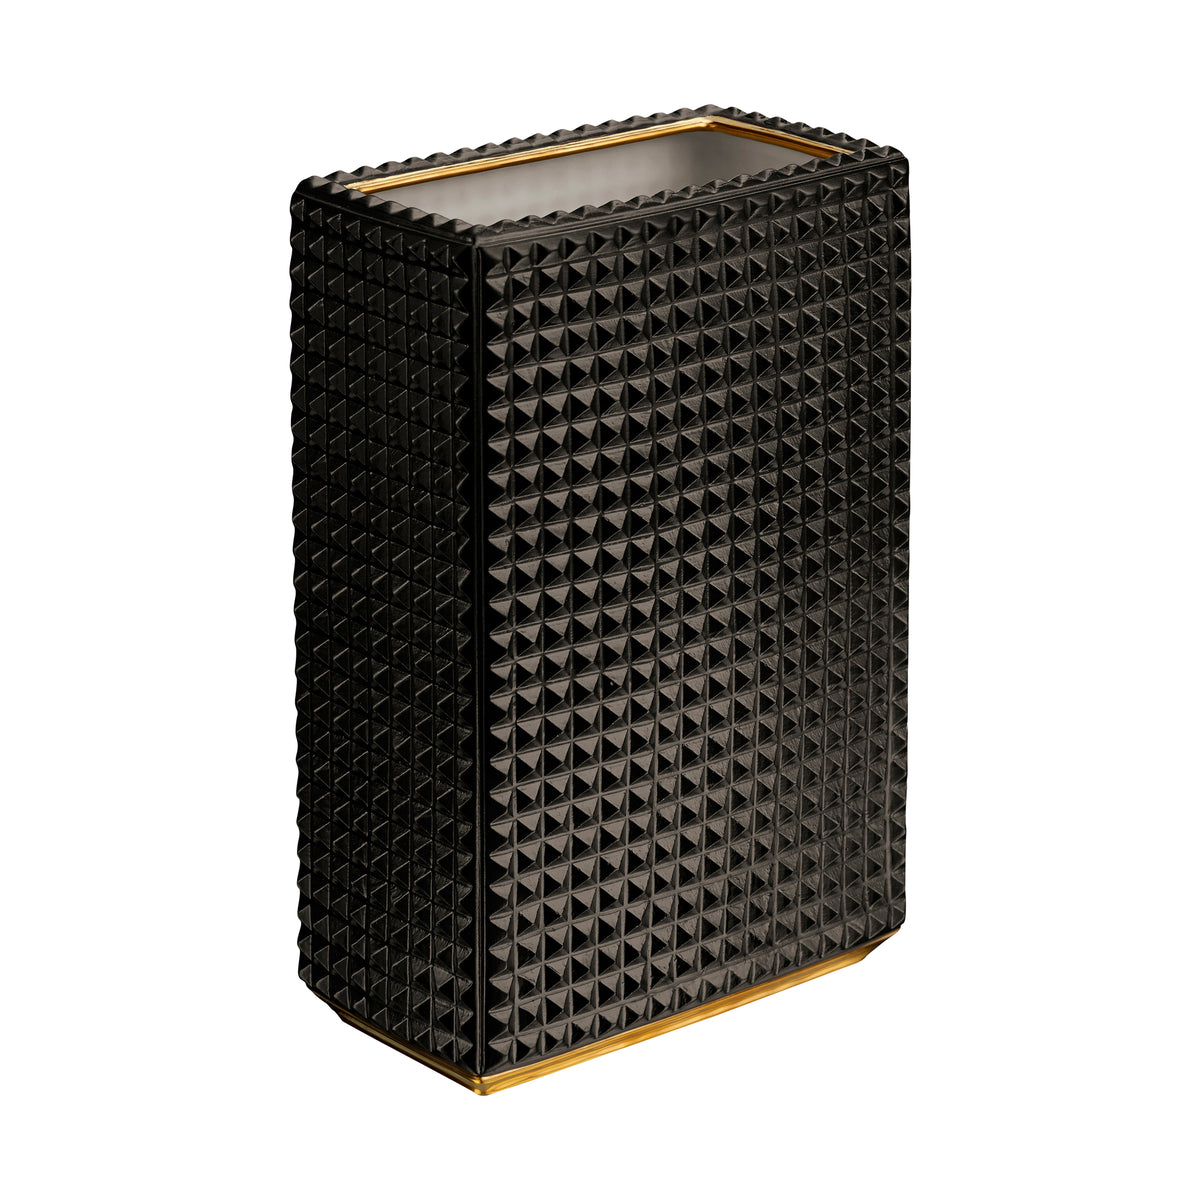 Black and Gold Bibliotheque Vase